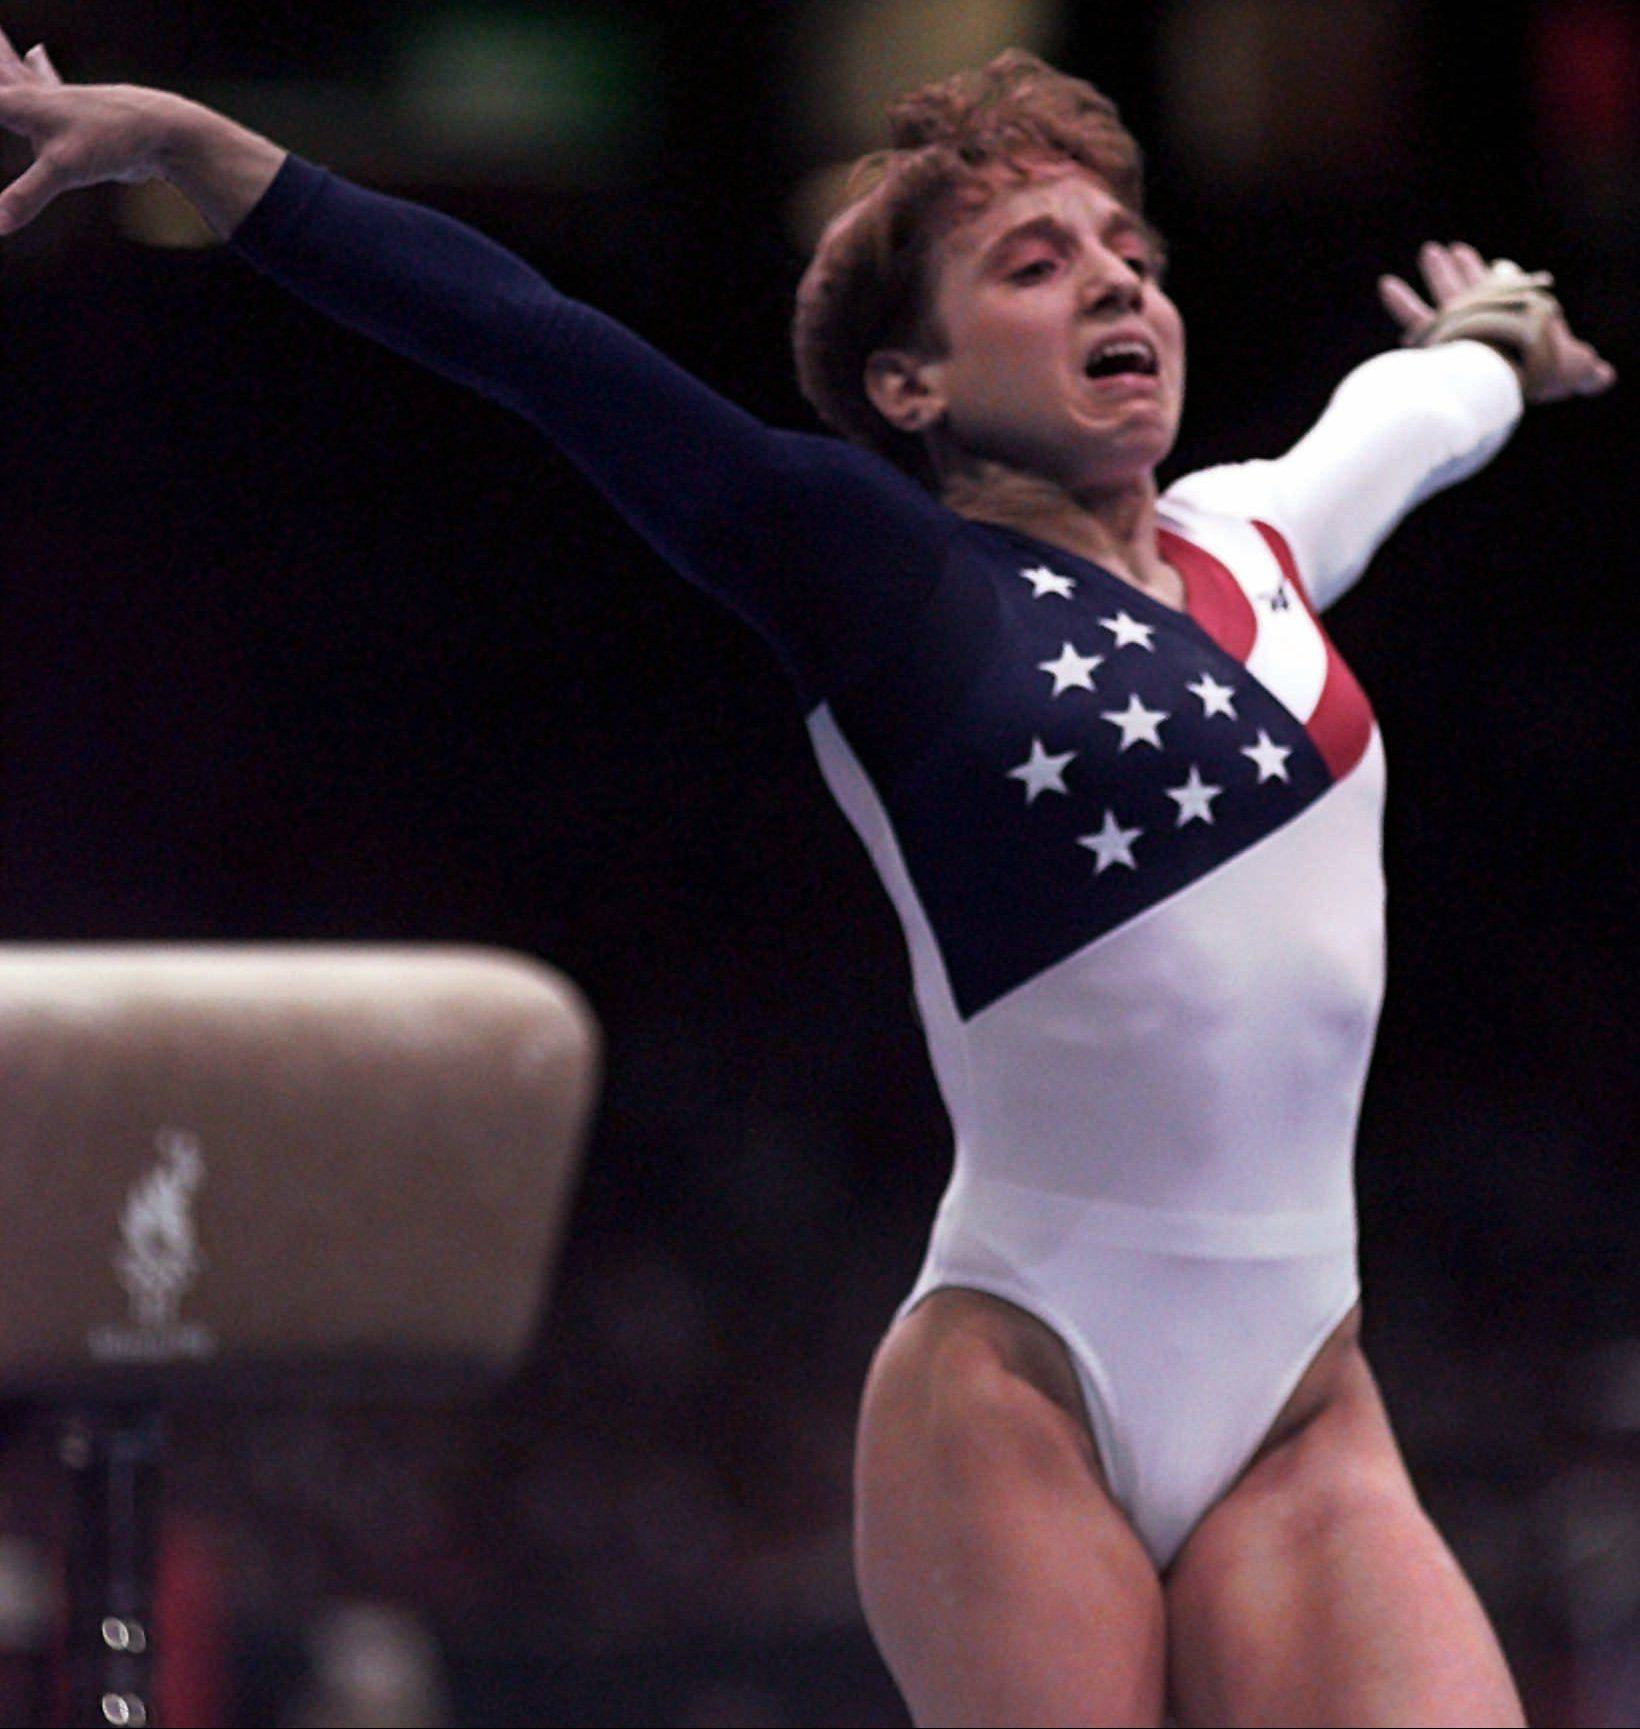 Kerri Strug injured her left leg during the landing of her vault routine in Atlanta.